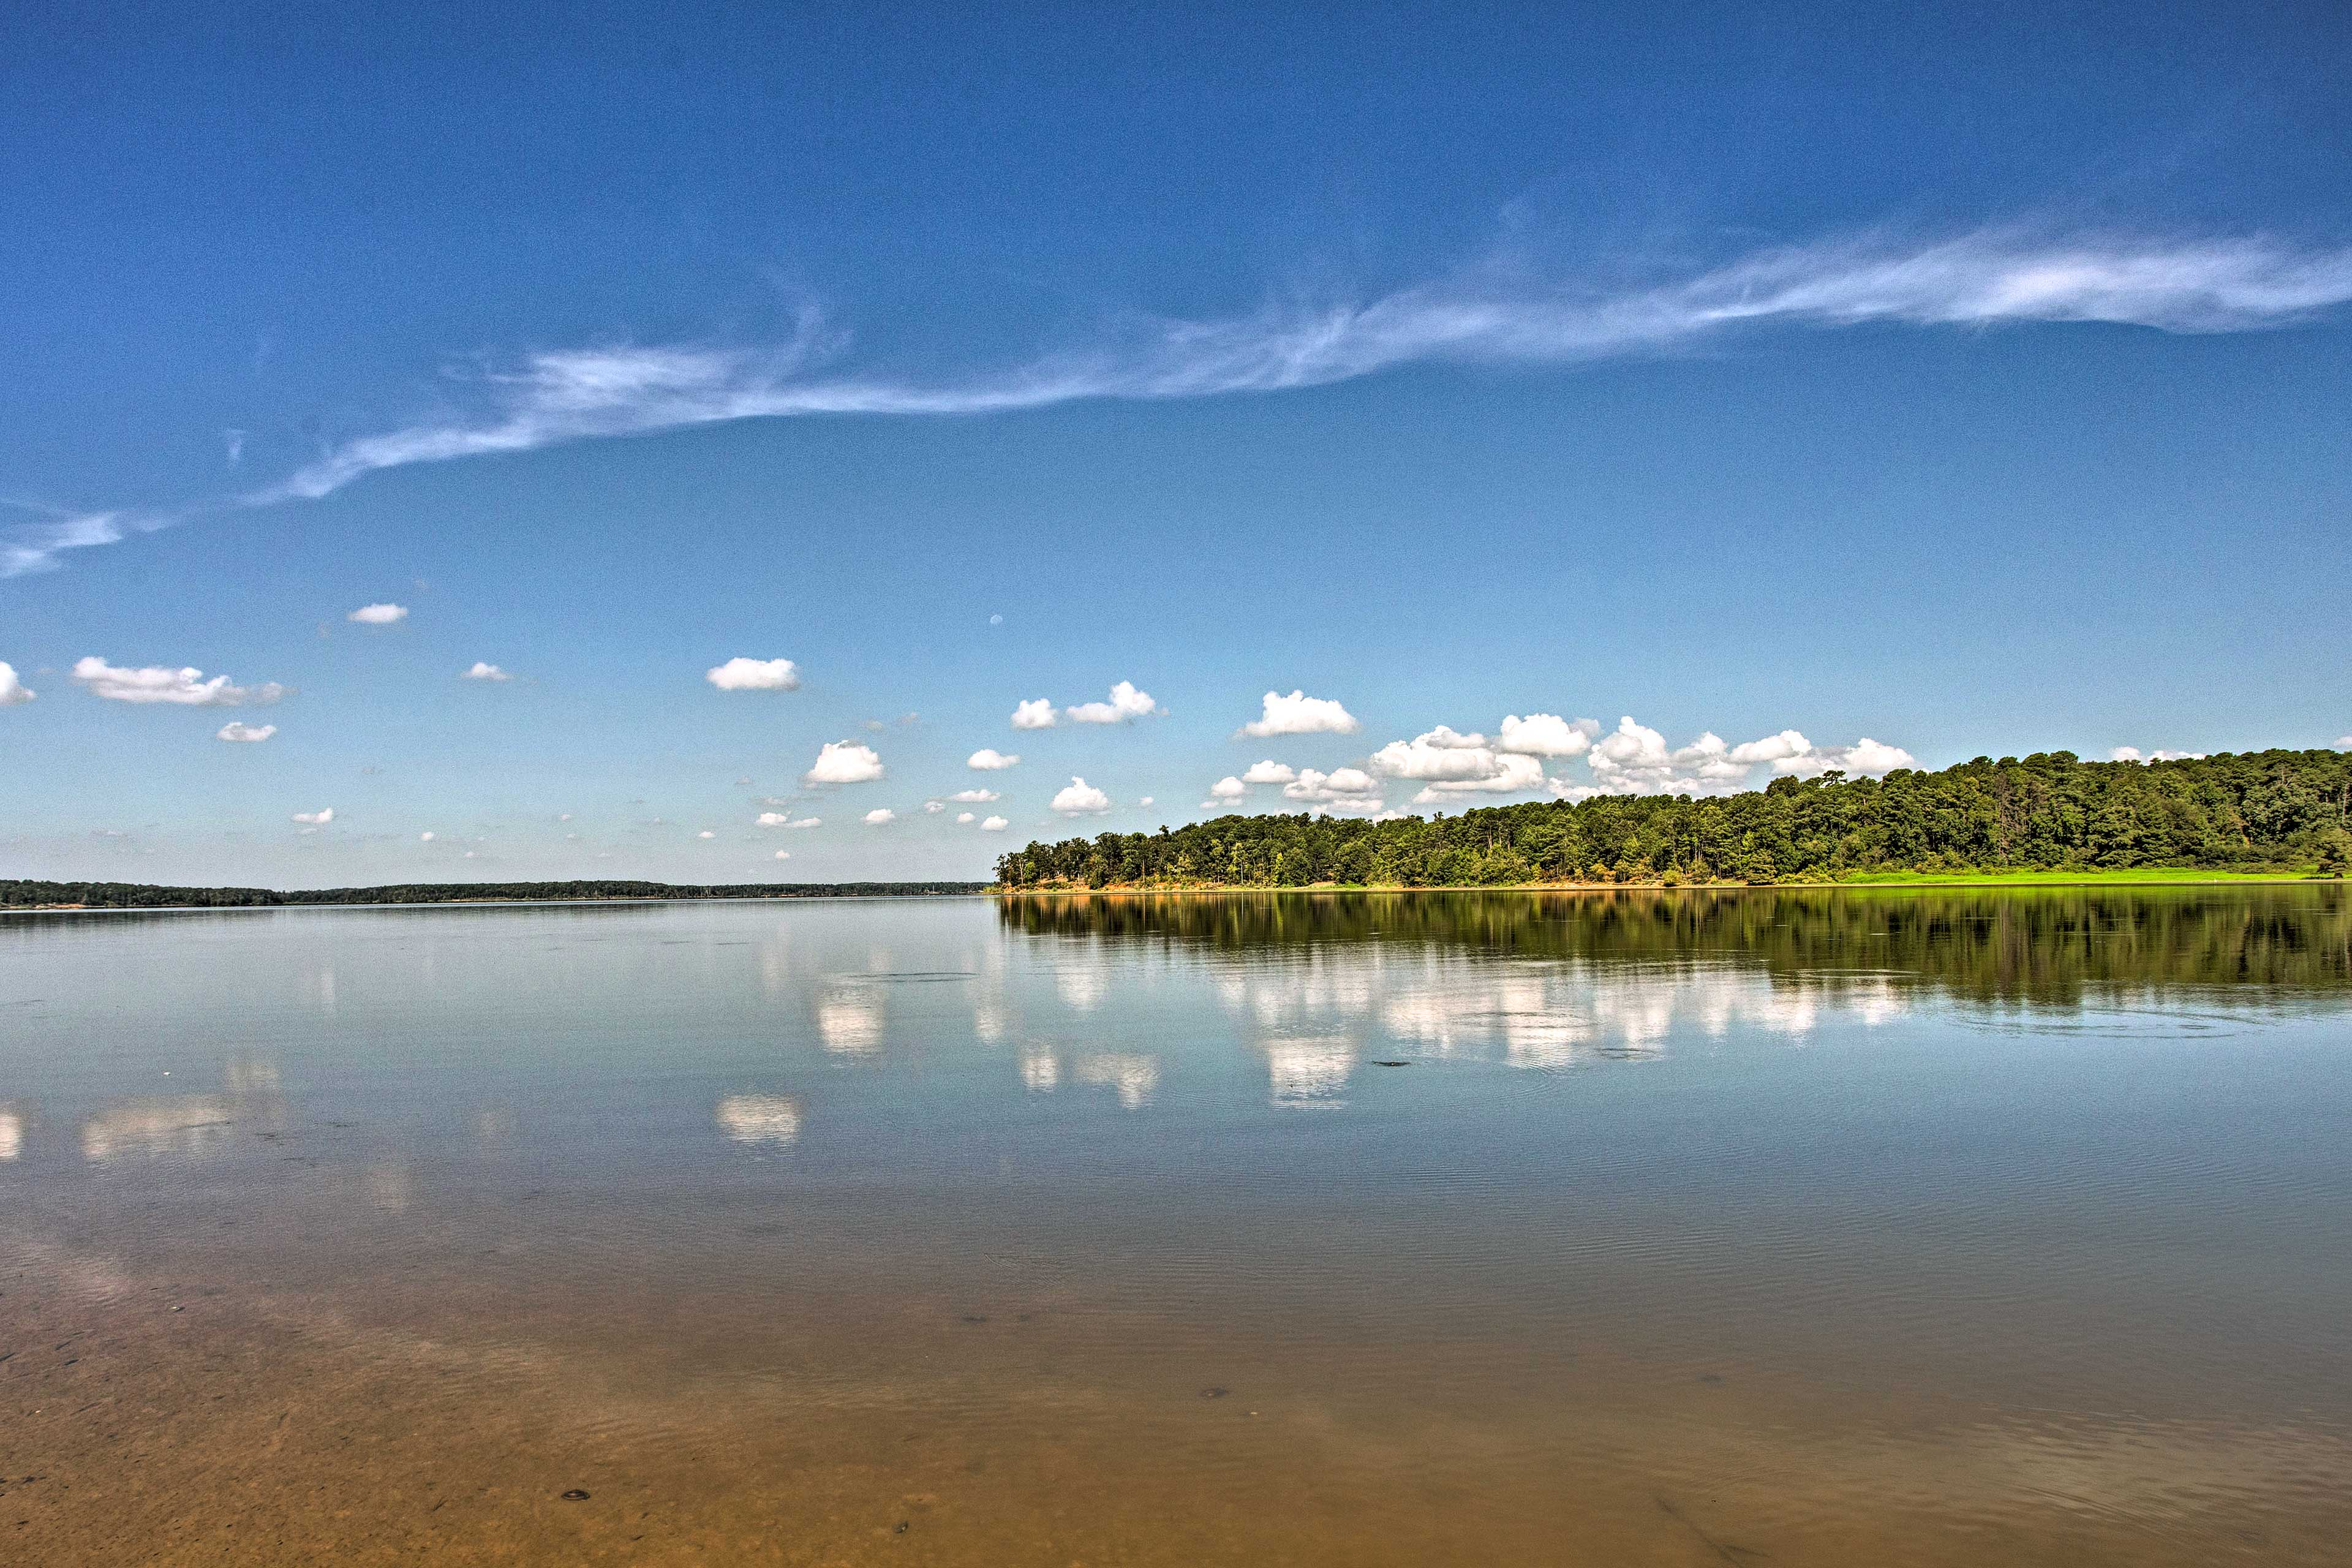 Lake O' the Pines is one of the most beautiful lakes in eastern Texas!